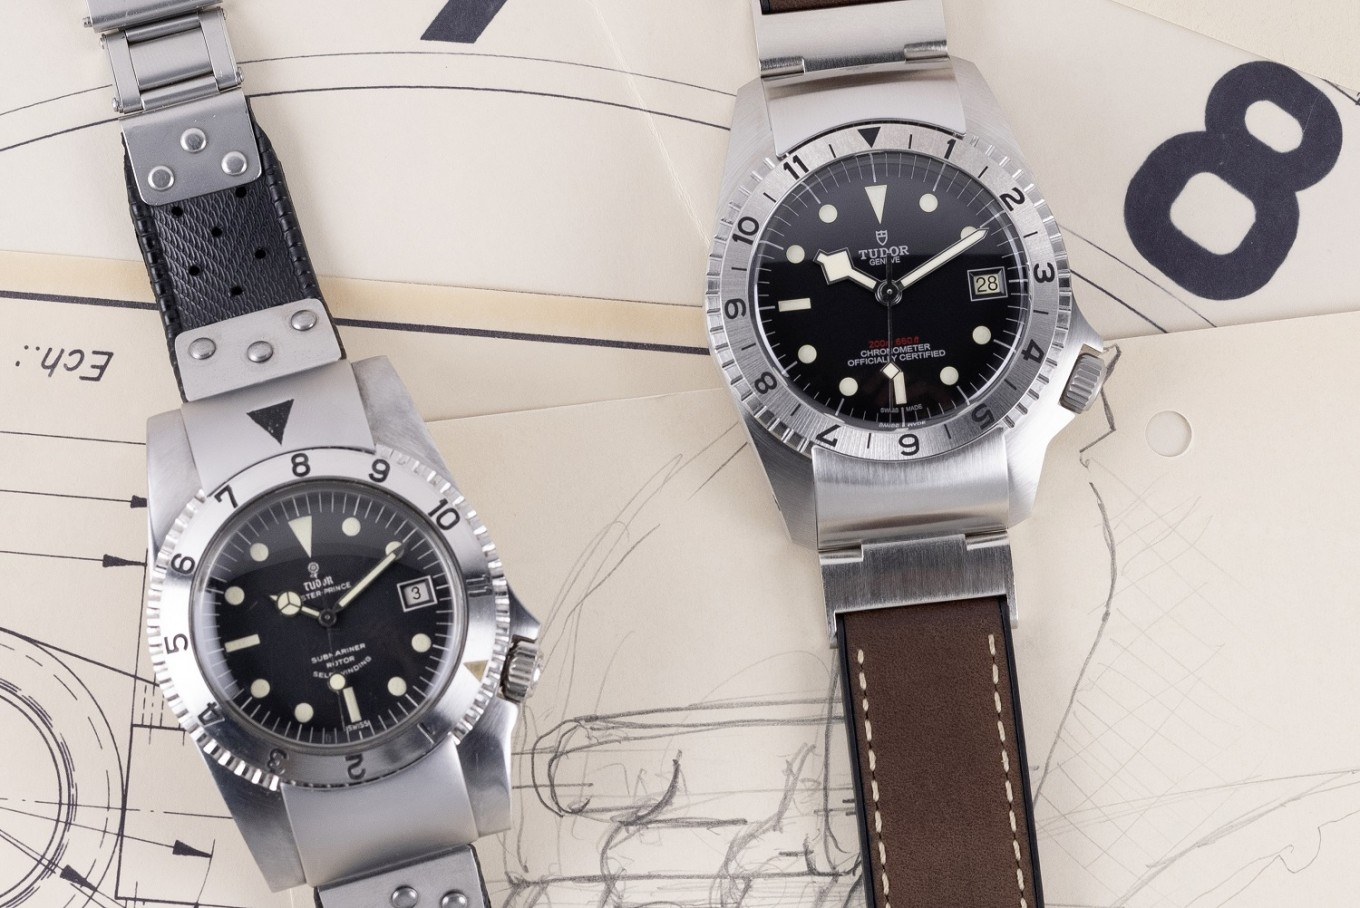 Tudor Black Bay P01 finally hits the market after 50 years